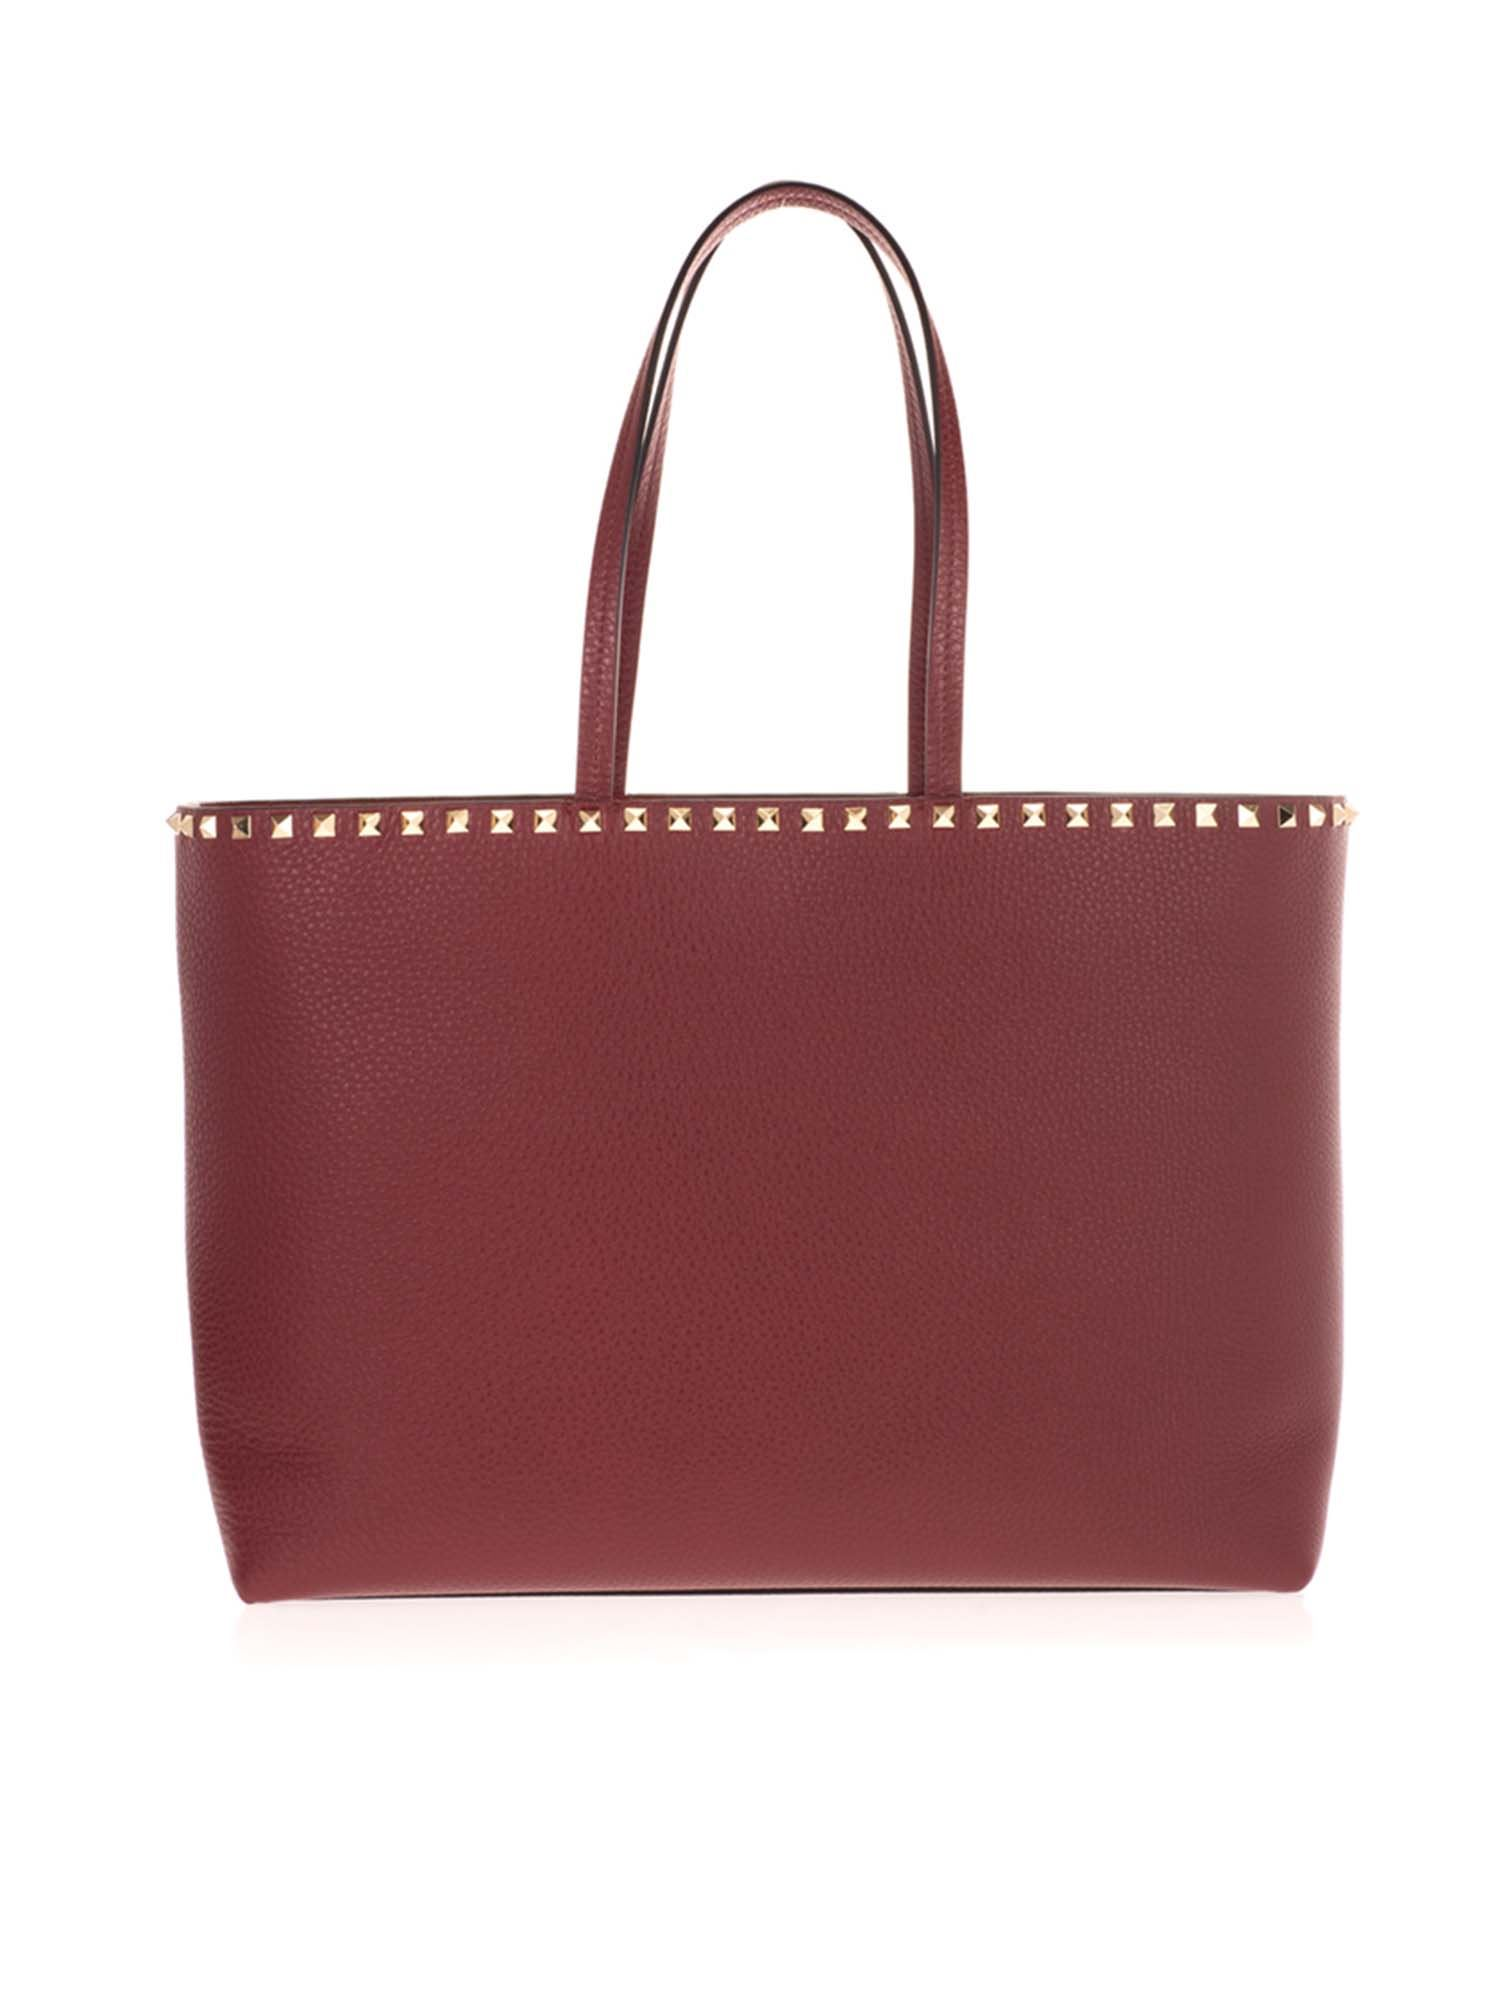 Valentino ROCKSTUD SHOPPING BAG IN CERISE COLOR